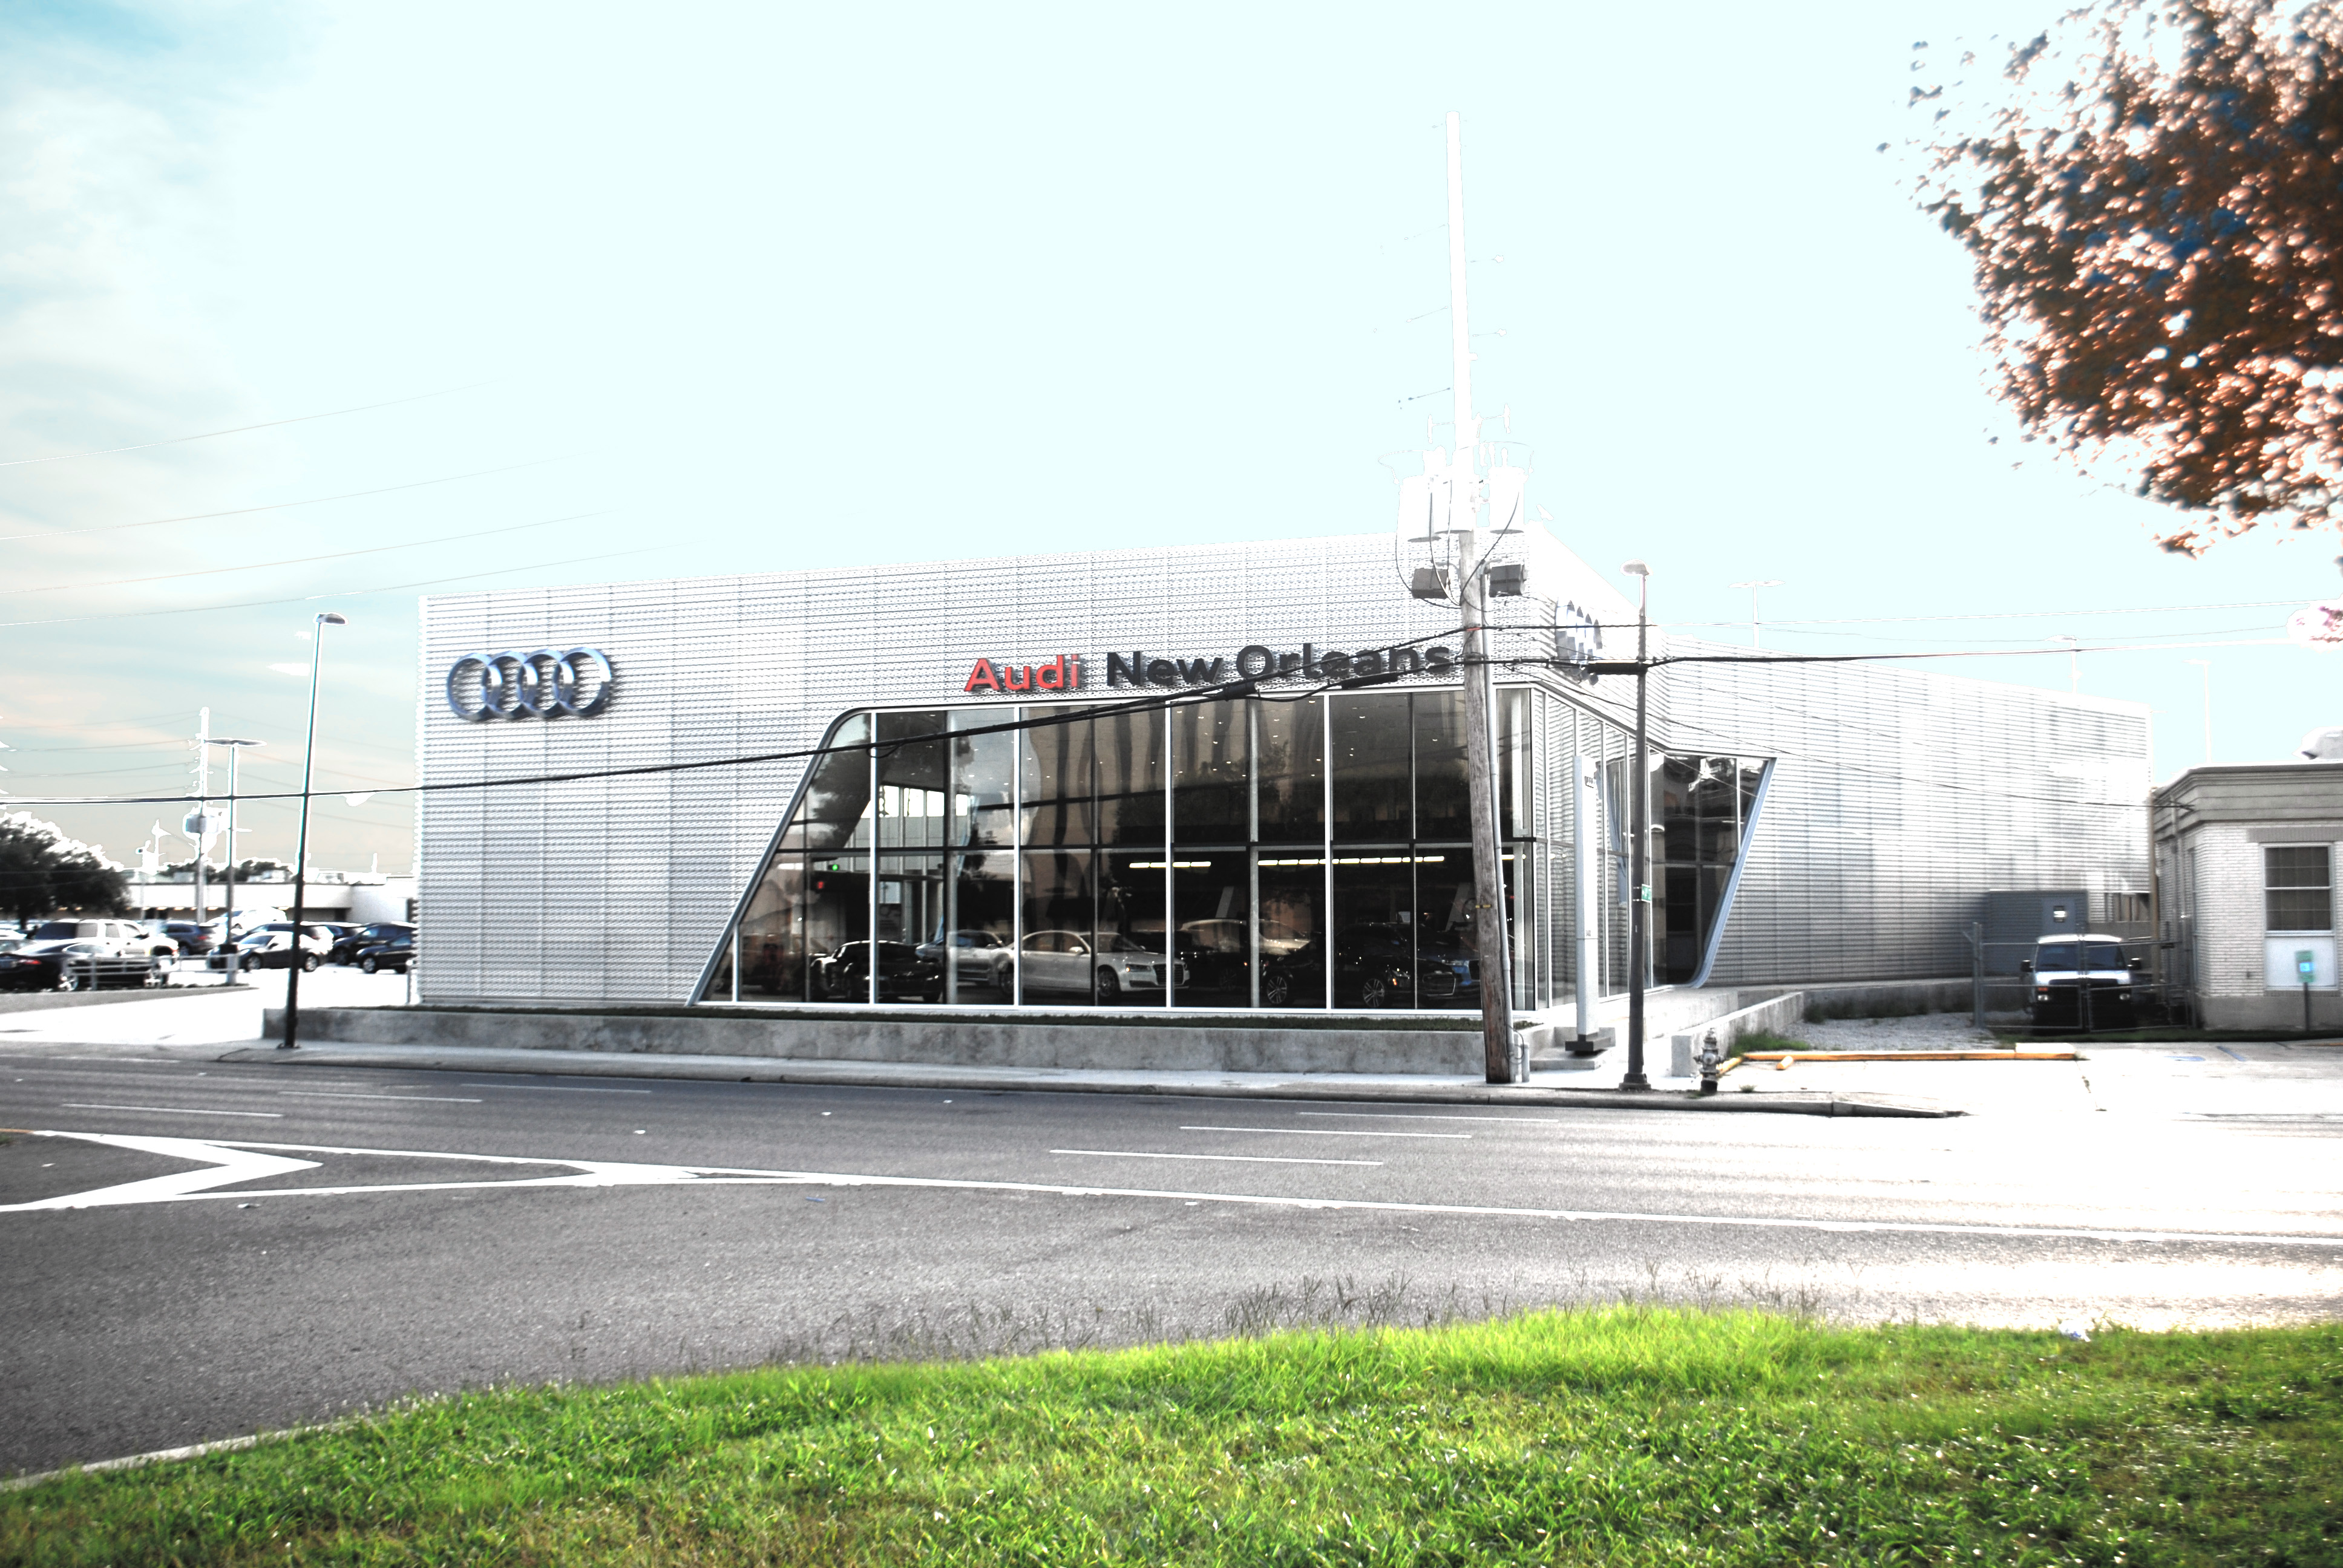 Audi New Orleans Mouton Long Turner Architects